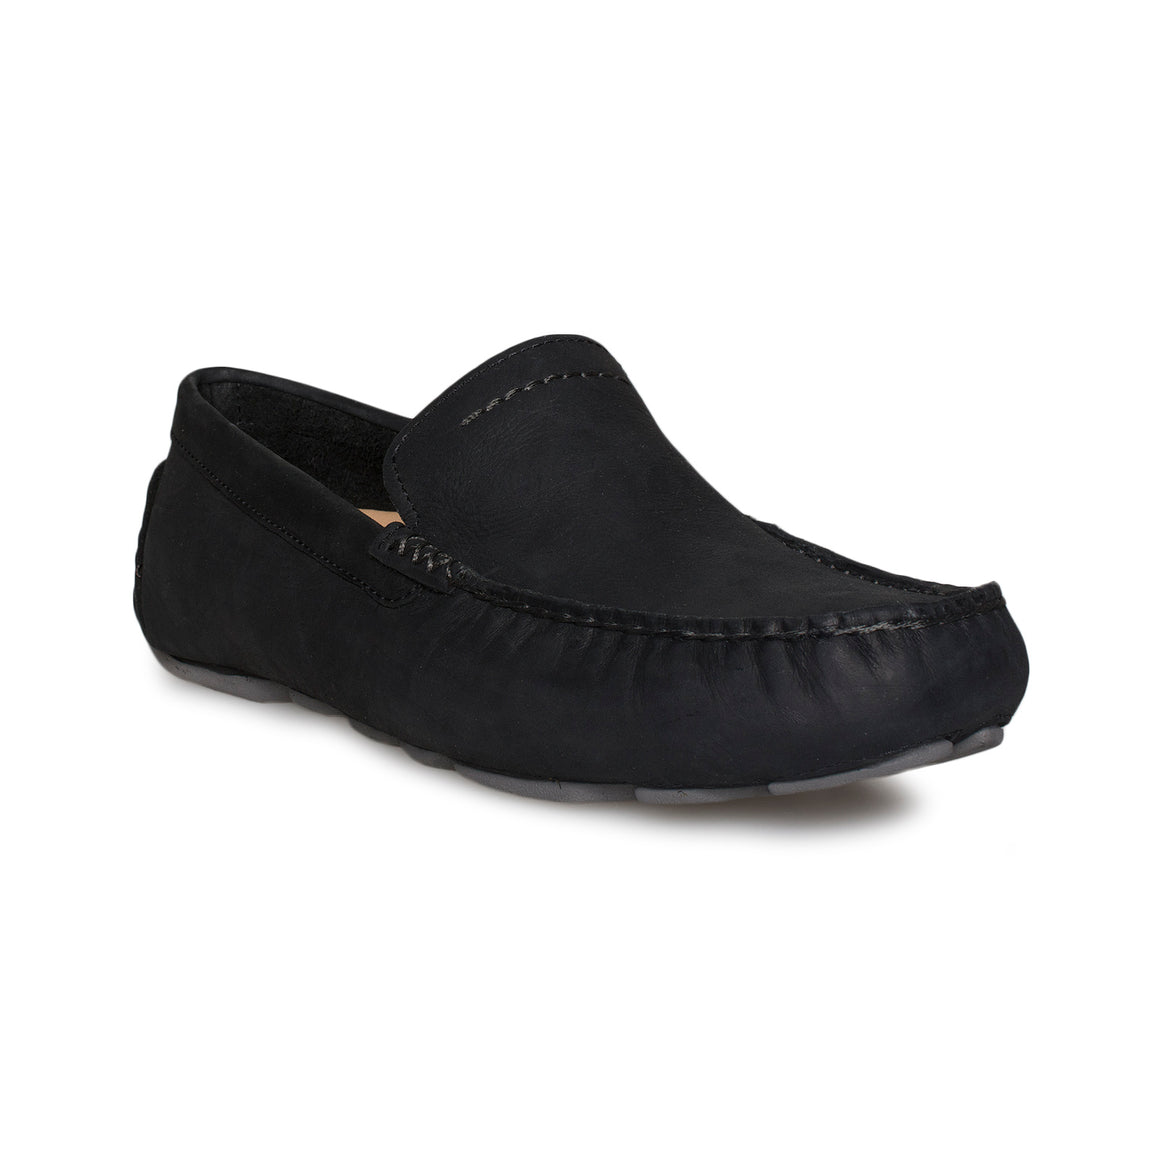 UGG Henrick Black Shoes - Men's